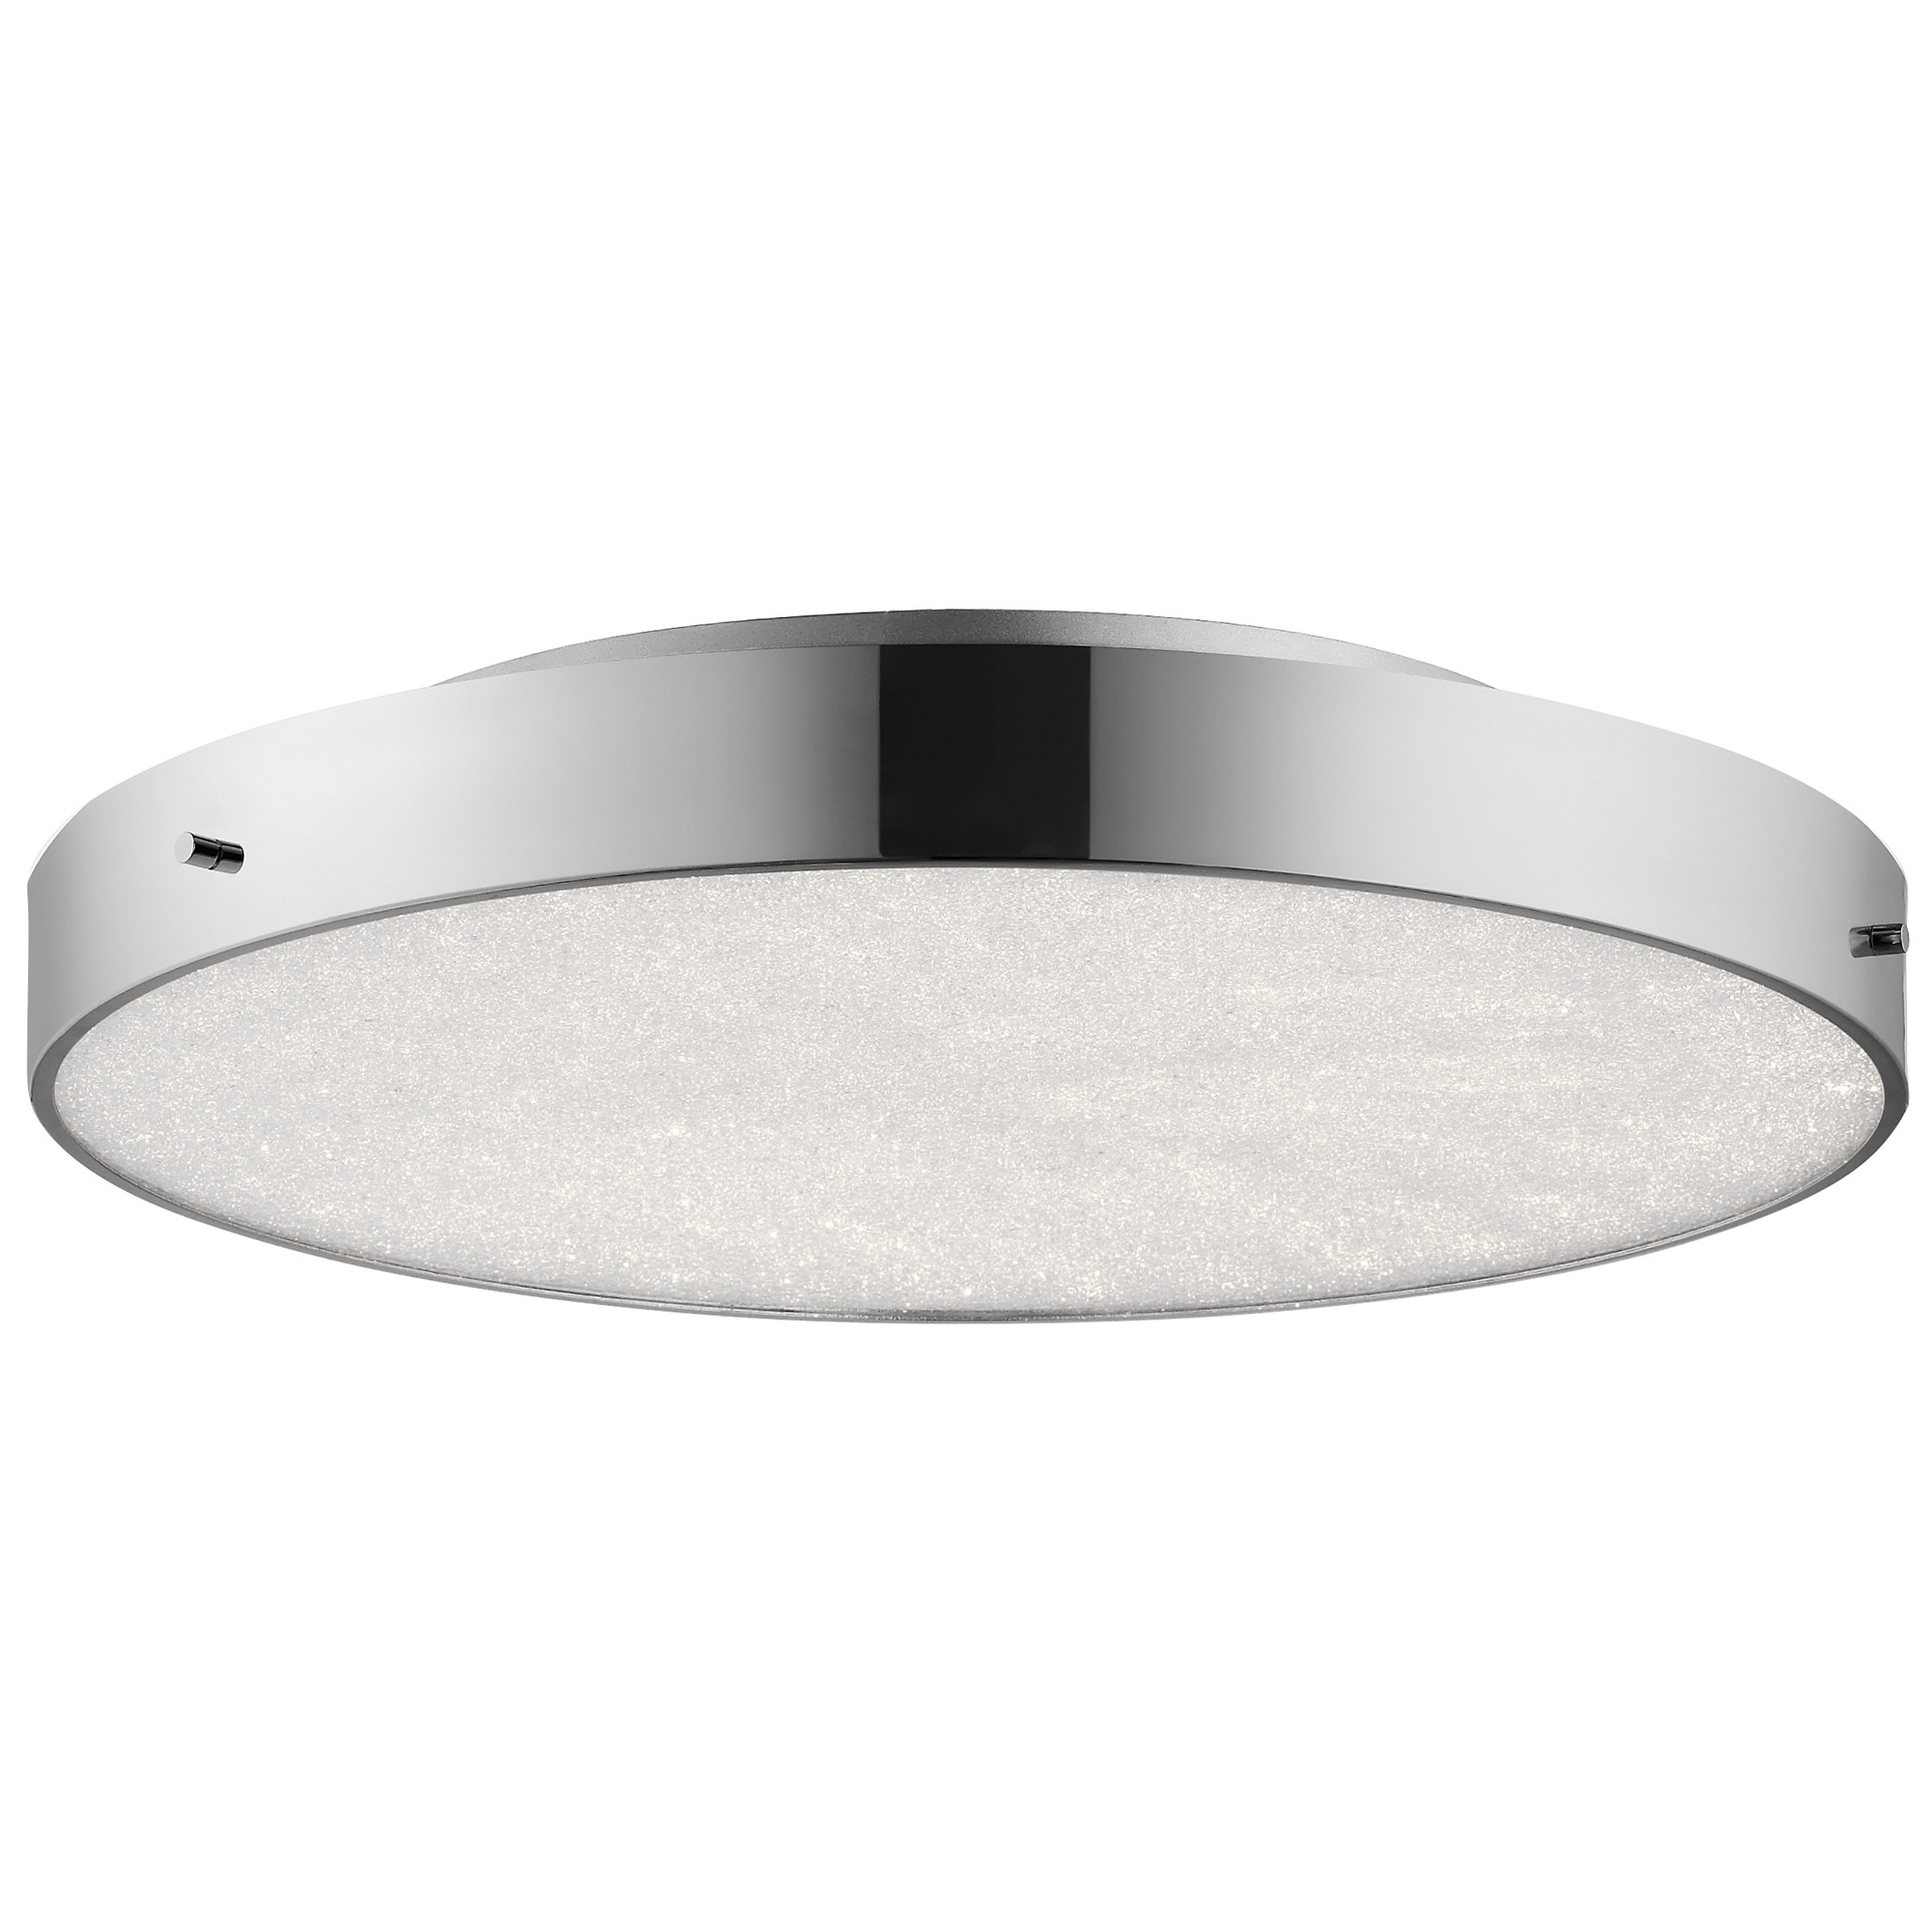 Crystal moon round ceiling light fixture by elan